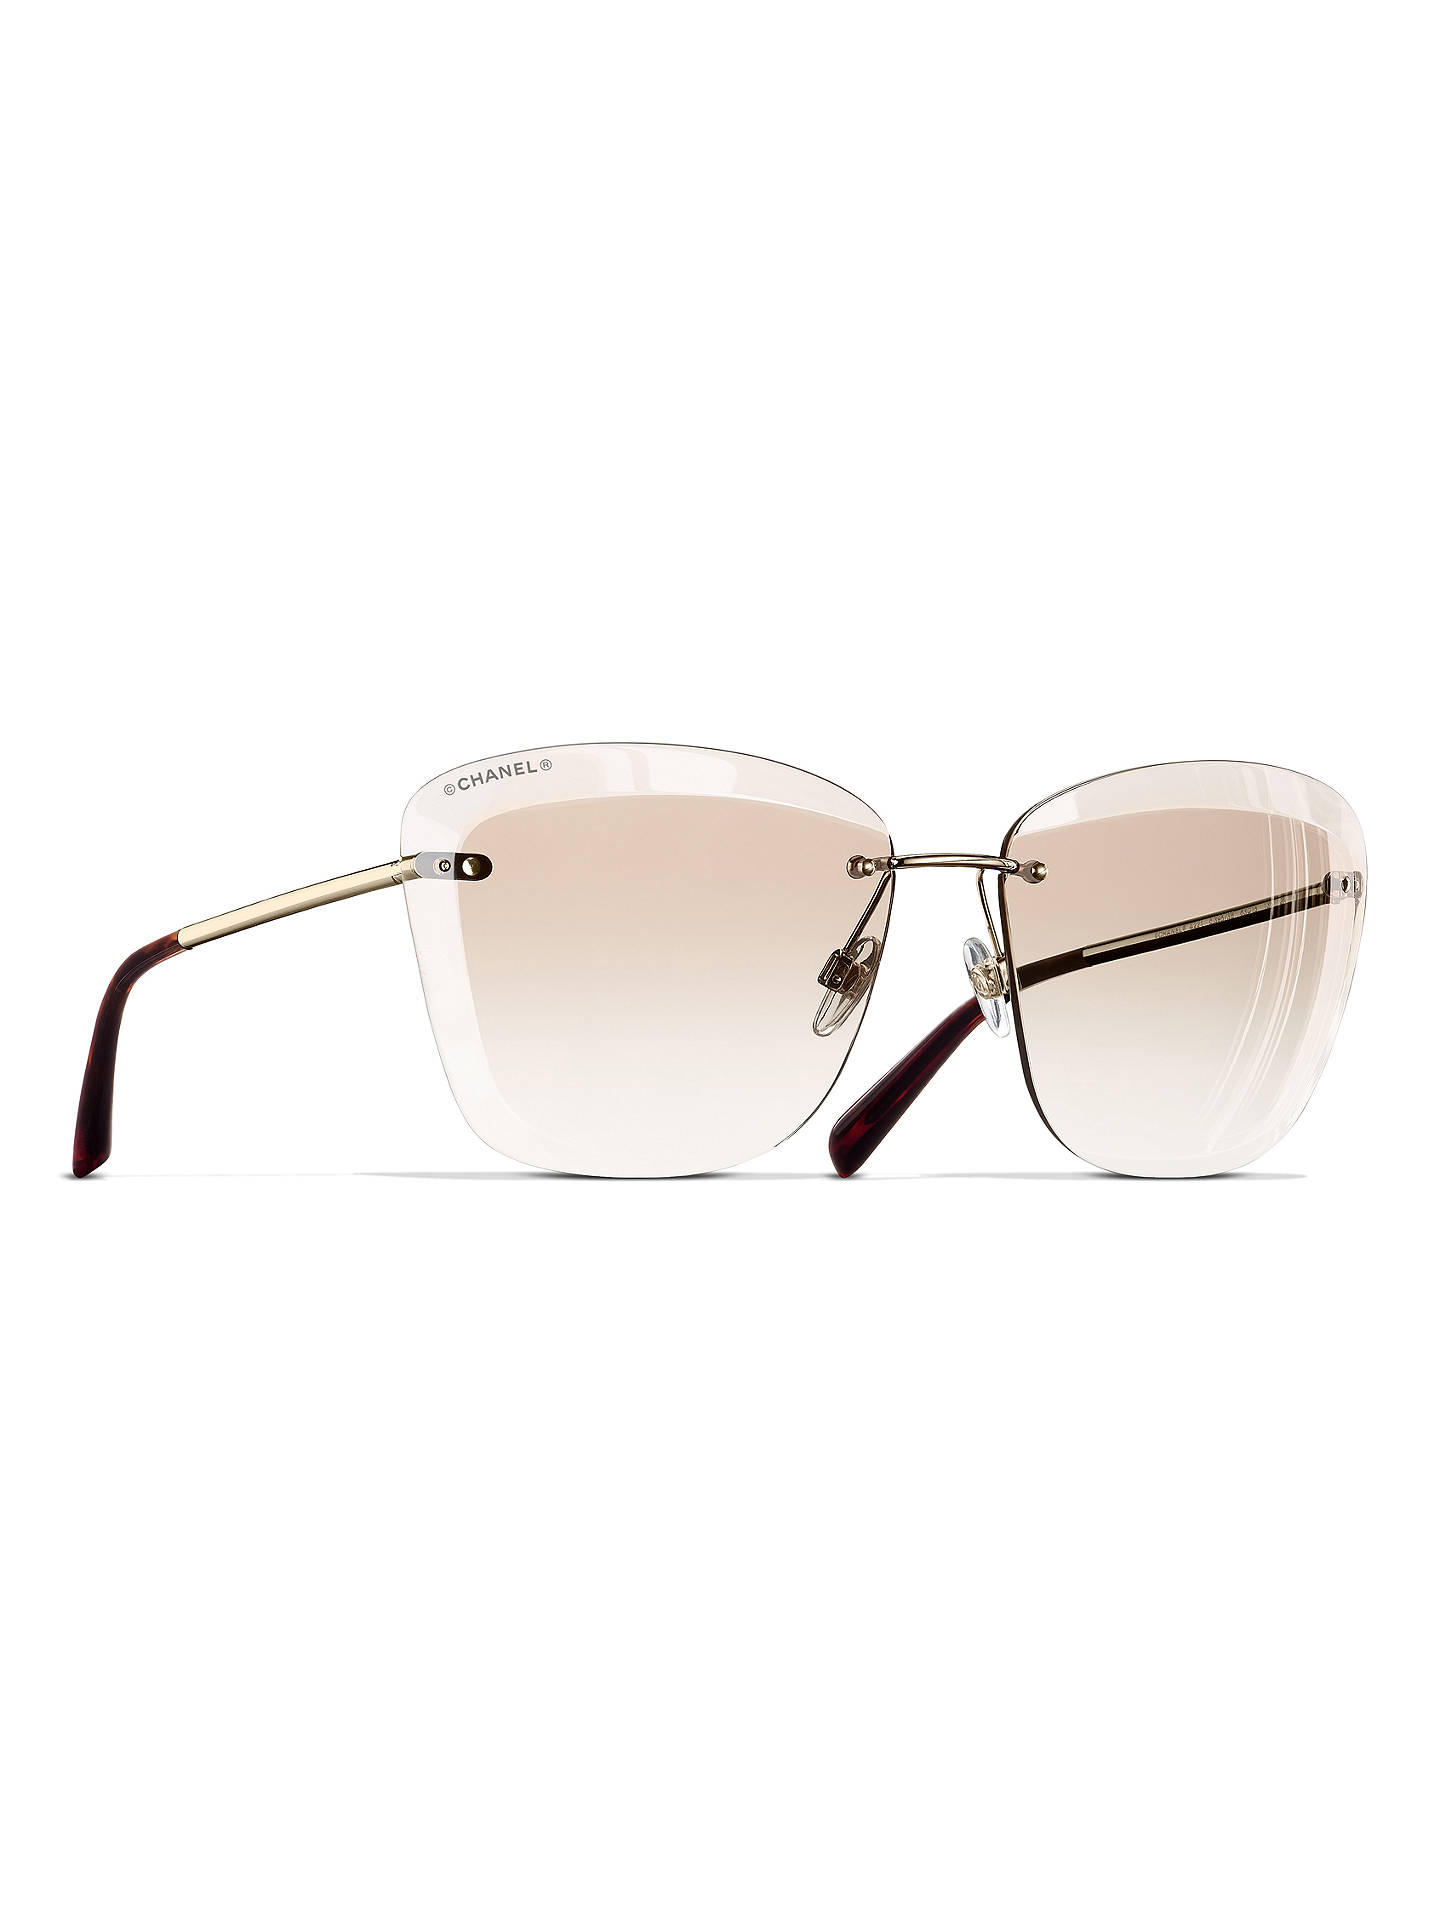 747c54cf063 BuyCHANEL Butterfly Sunglasses CH4221 Gold Beige Online at johnlewis.com ...